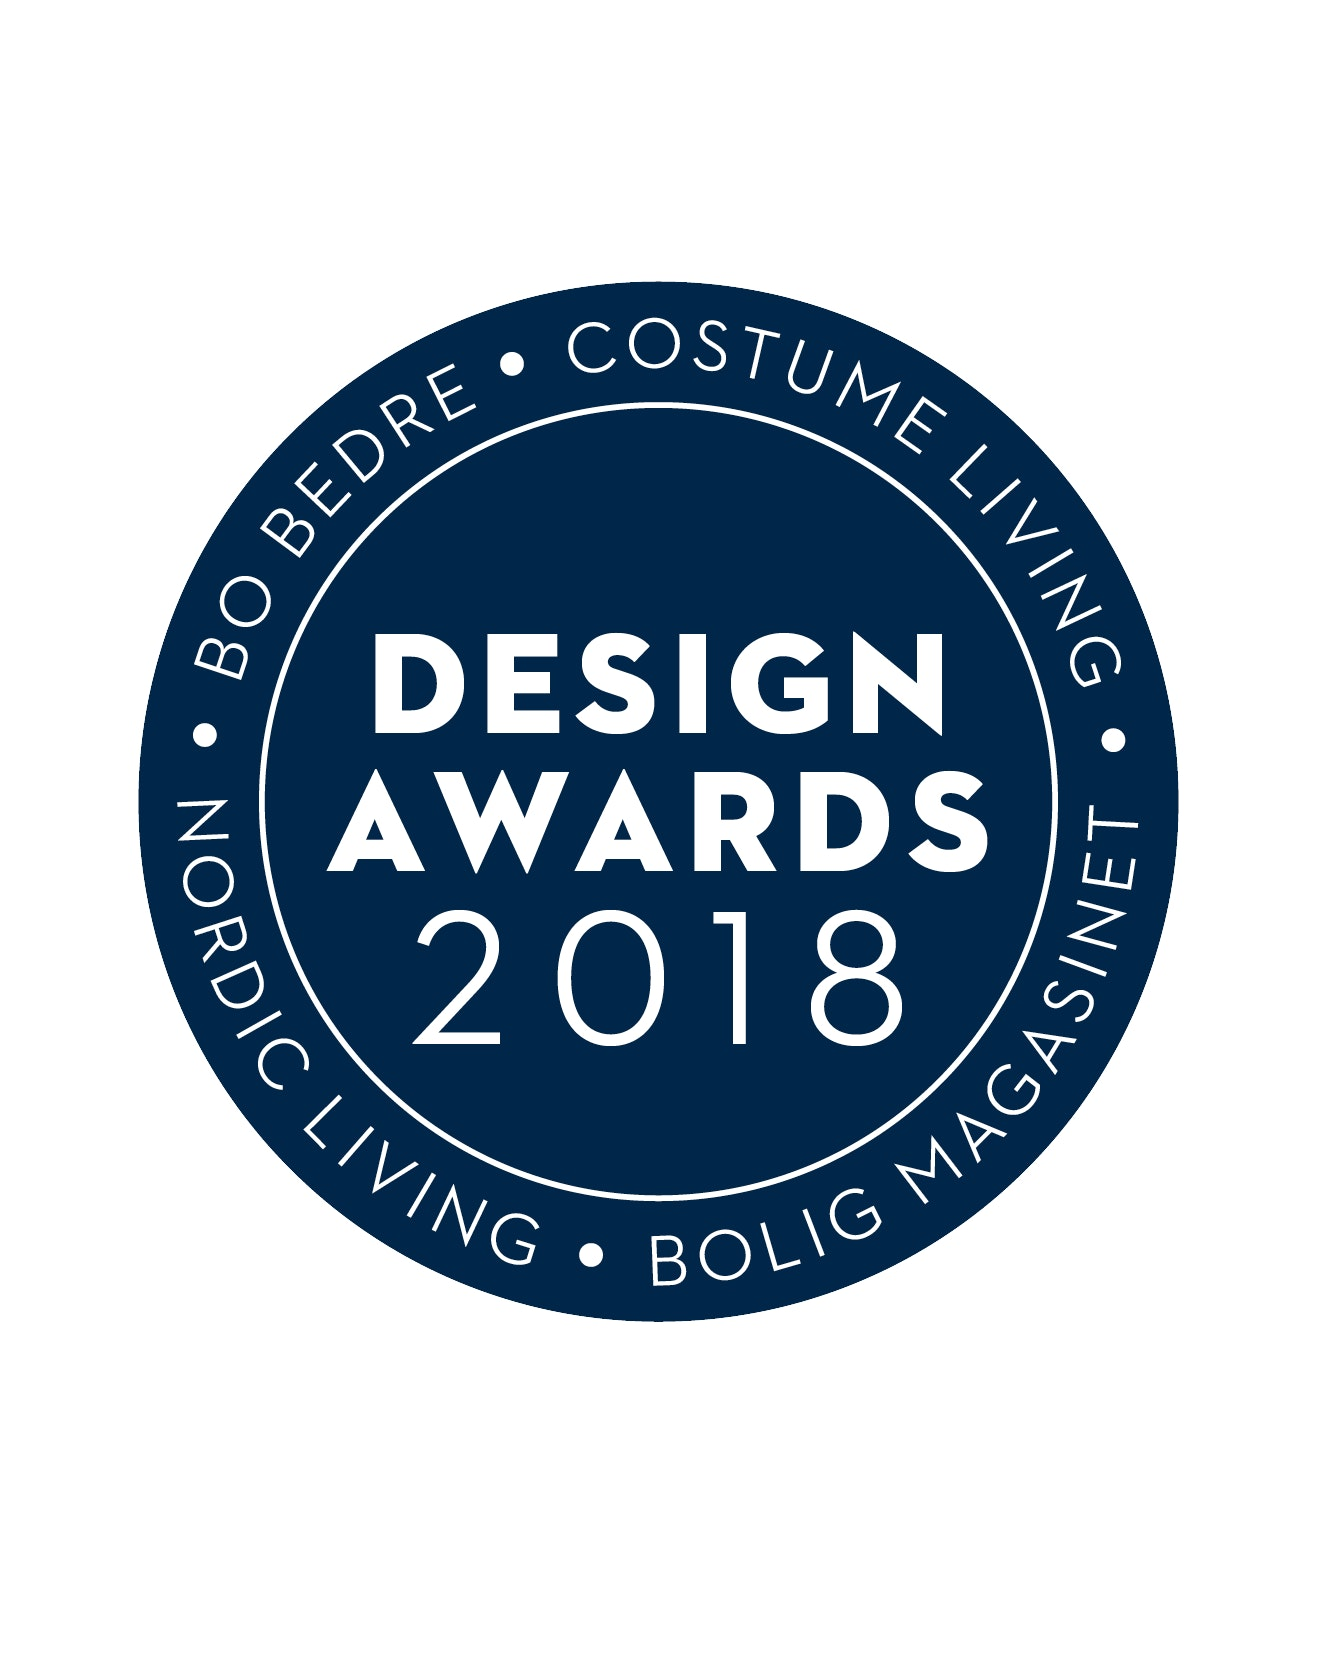 Design Awards 2018 logo i blå